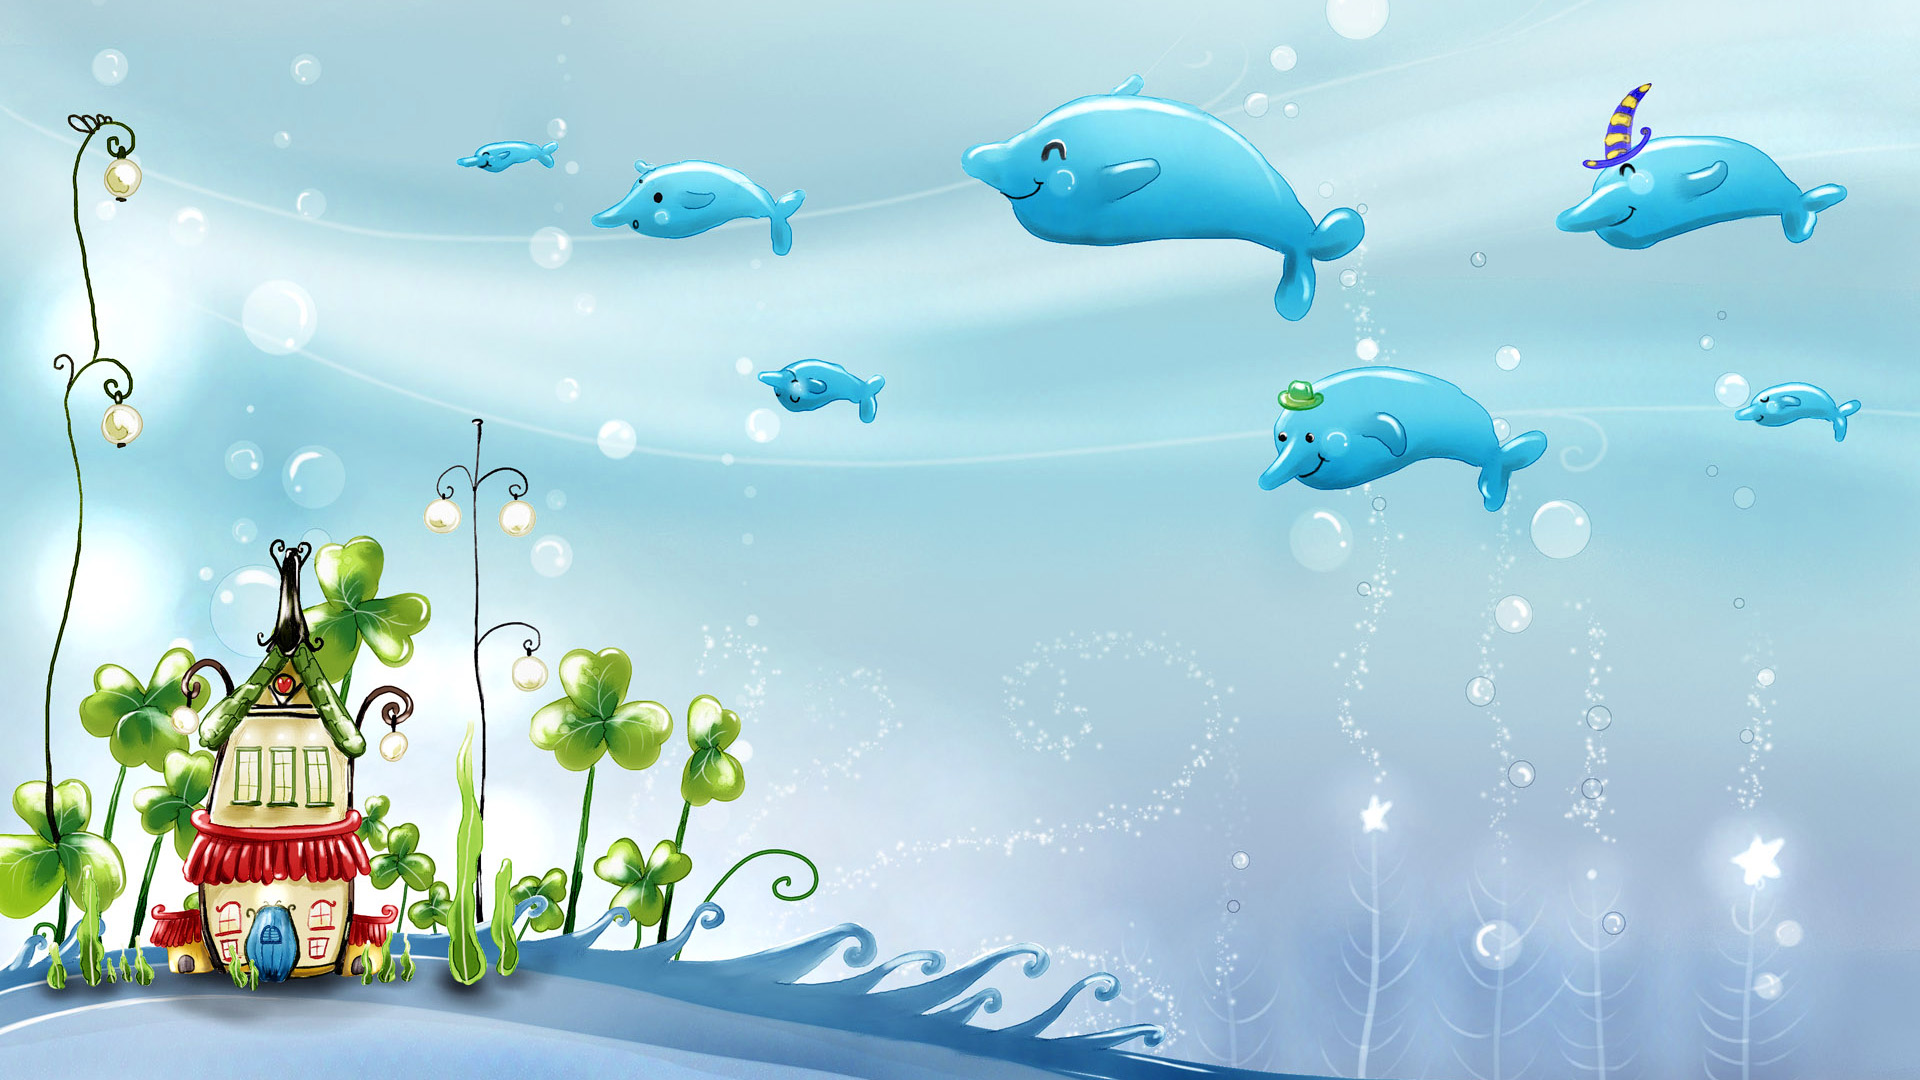 Cute Wallpaper Android Phone 11090 Wallpaper Cool Walldiskpapercom 1920x1080